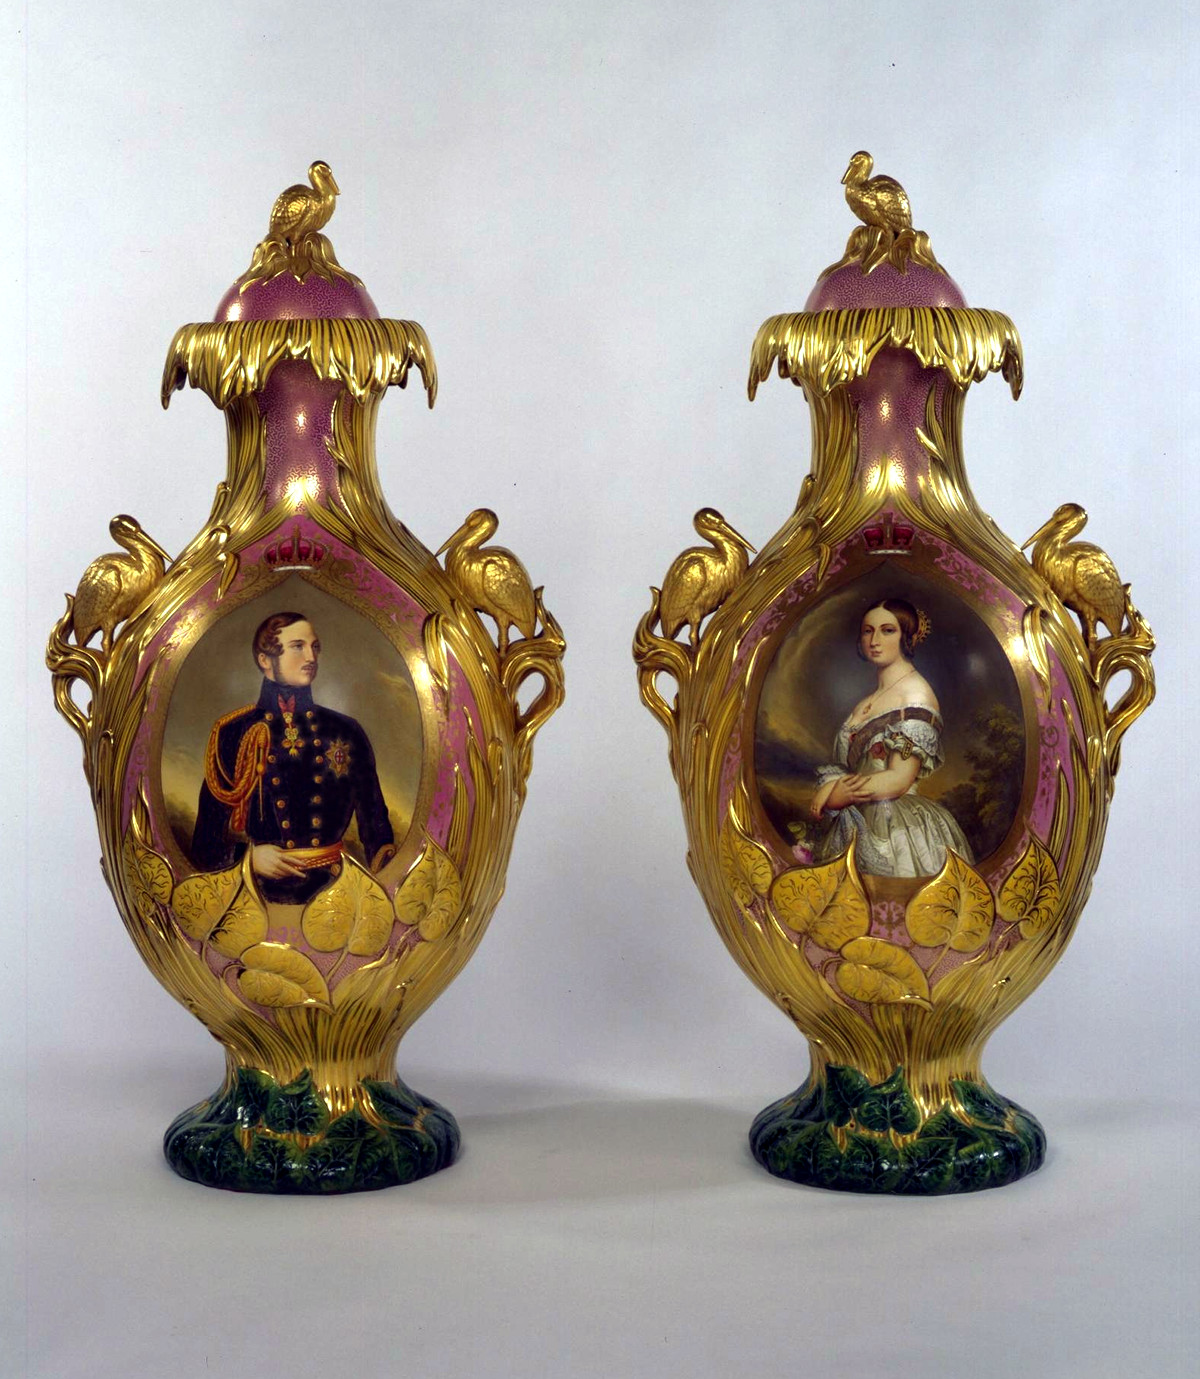 One of a pair of extravagant vases with finely painted views of the Crystal Palace on one side, and patriotic portraits of the Queen and Prince Consort on the other. © Victoria and Albert Museum, London